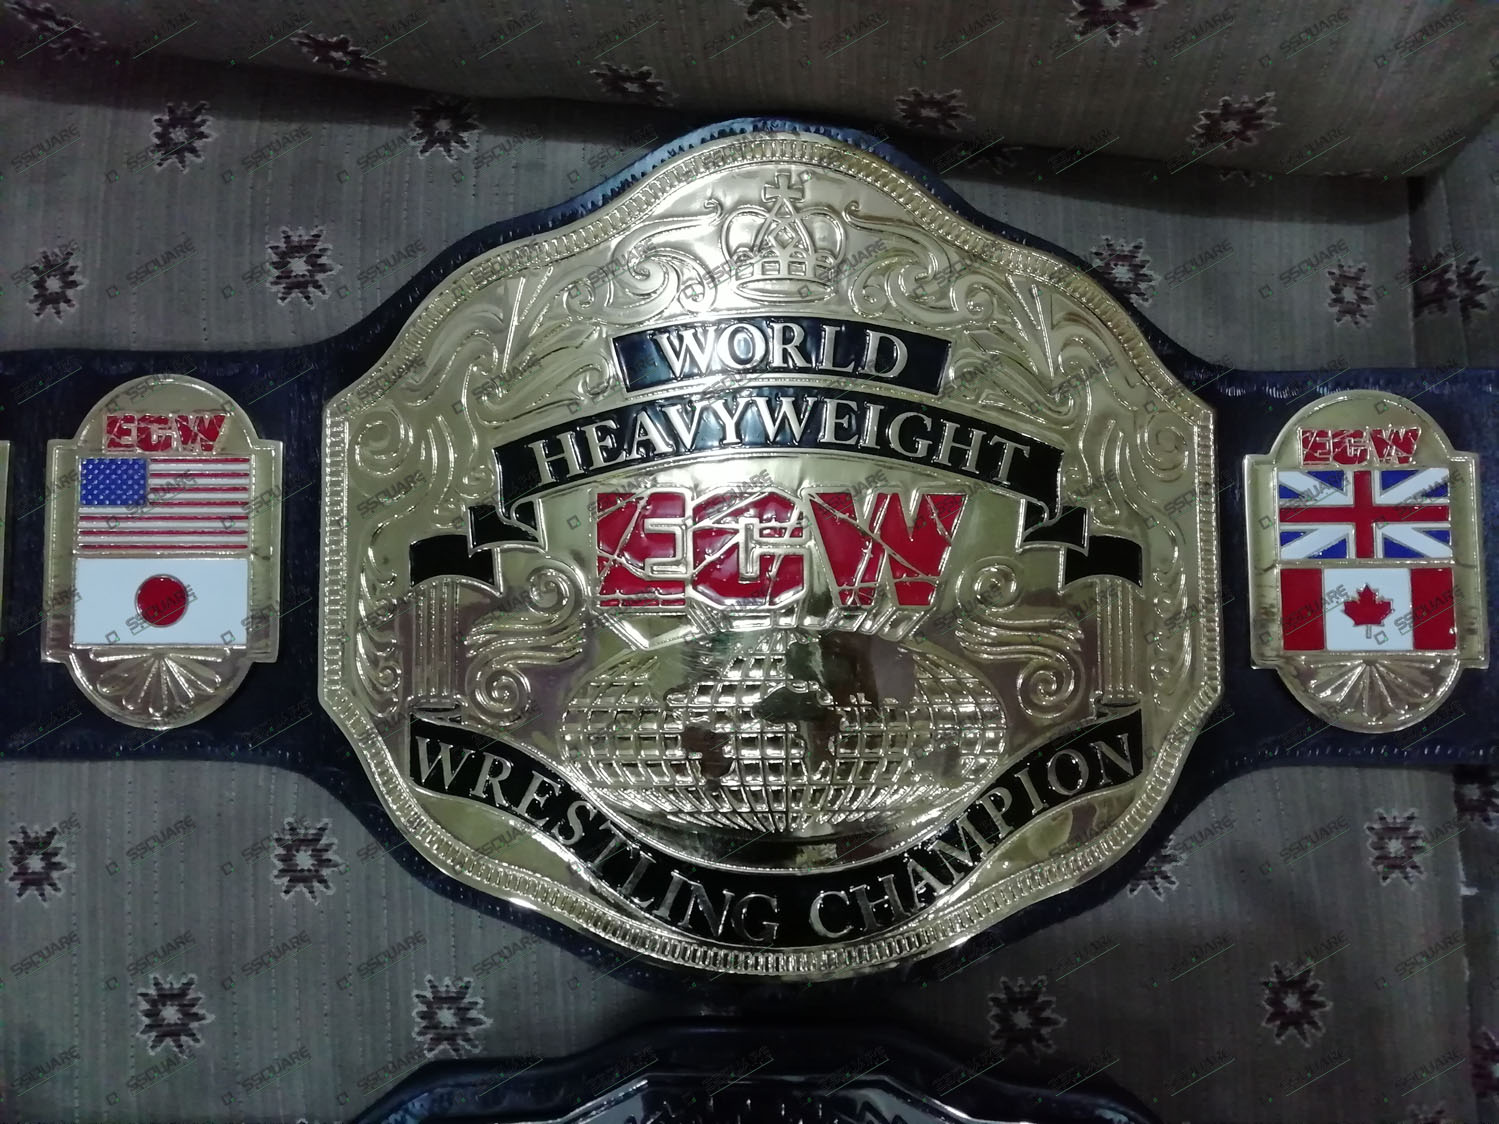 World Heavyweight ECW Wrestling Champion replica belt